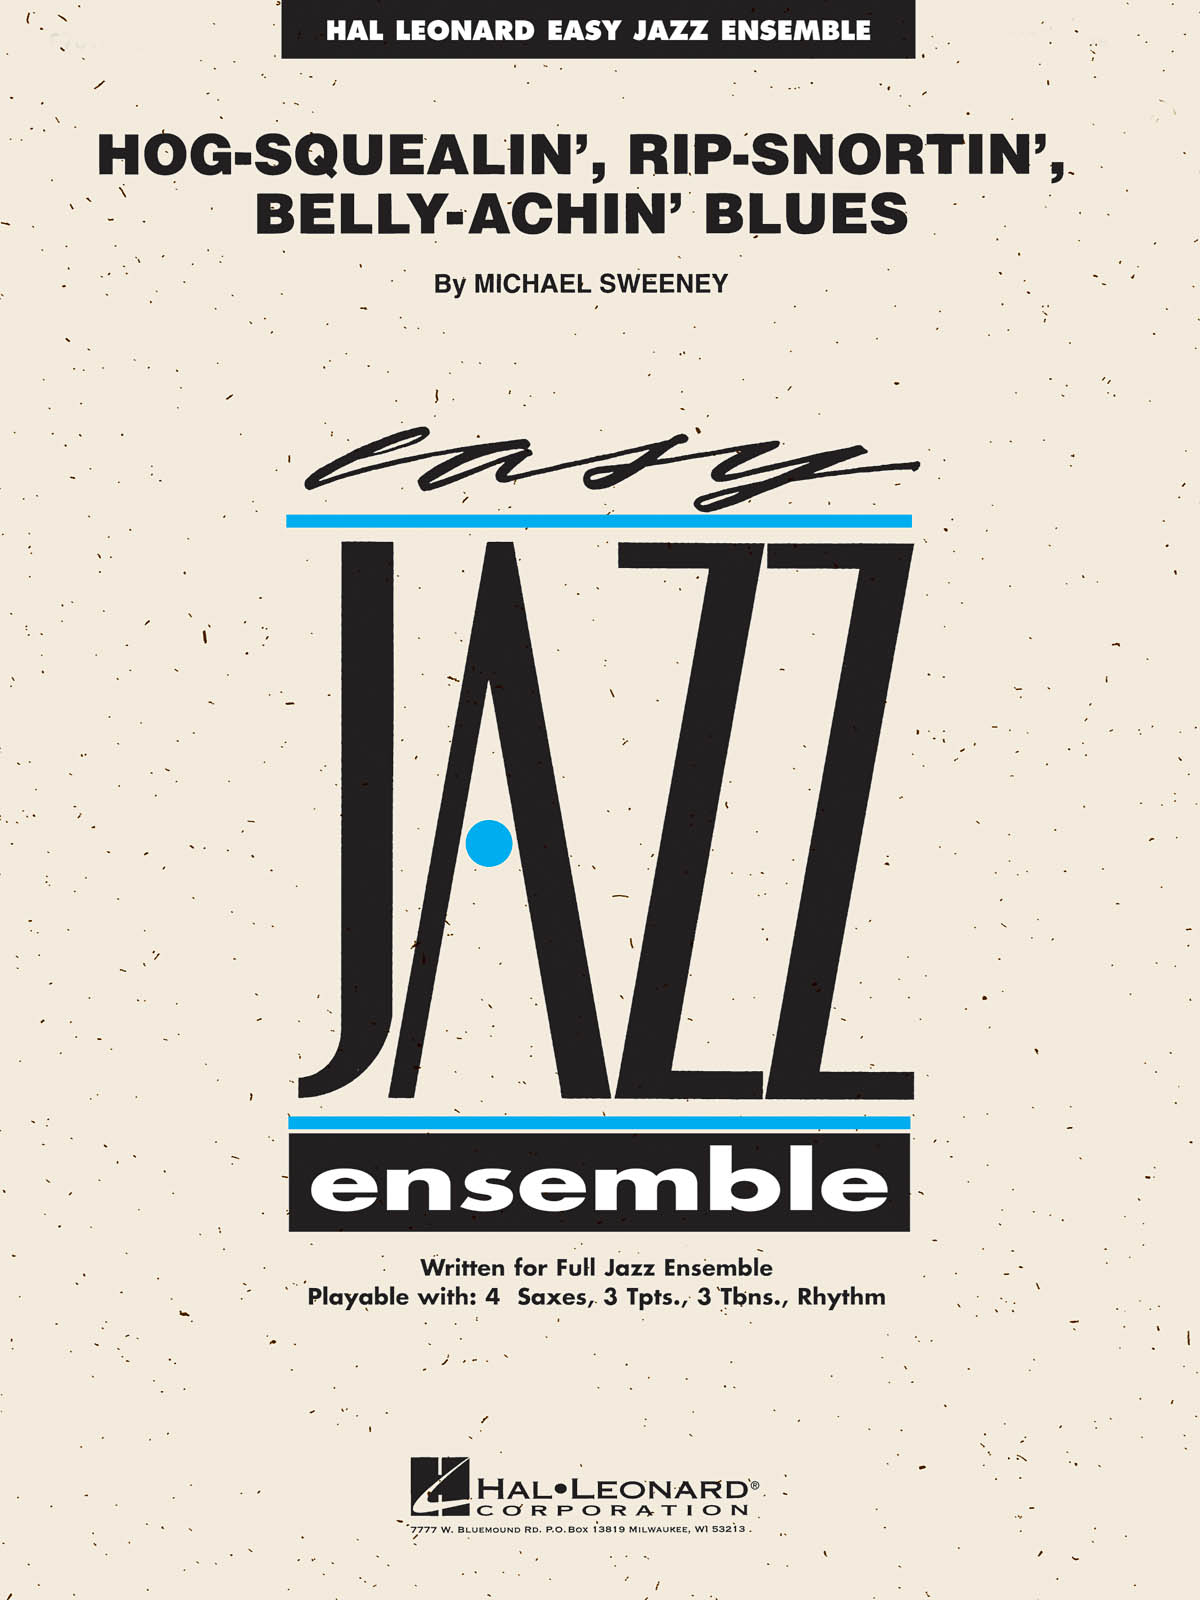 Hog-Squealin', Rip-Snortin' Belly-Achin' Blues: Easy Jazz Ensemble